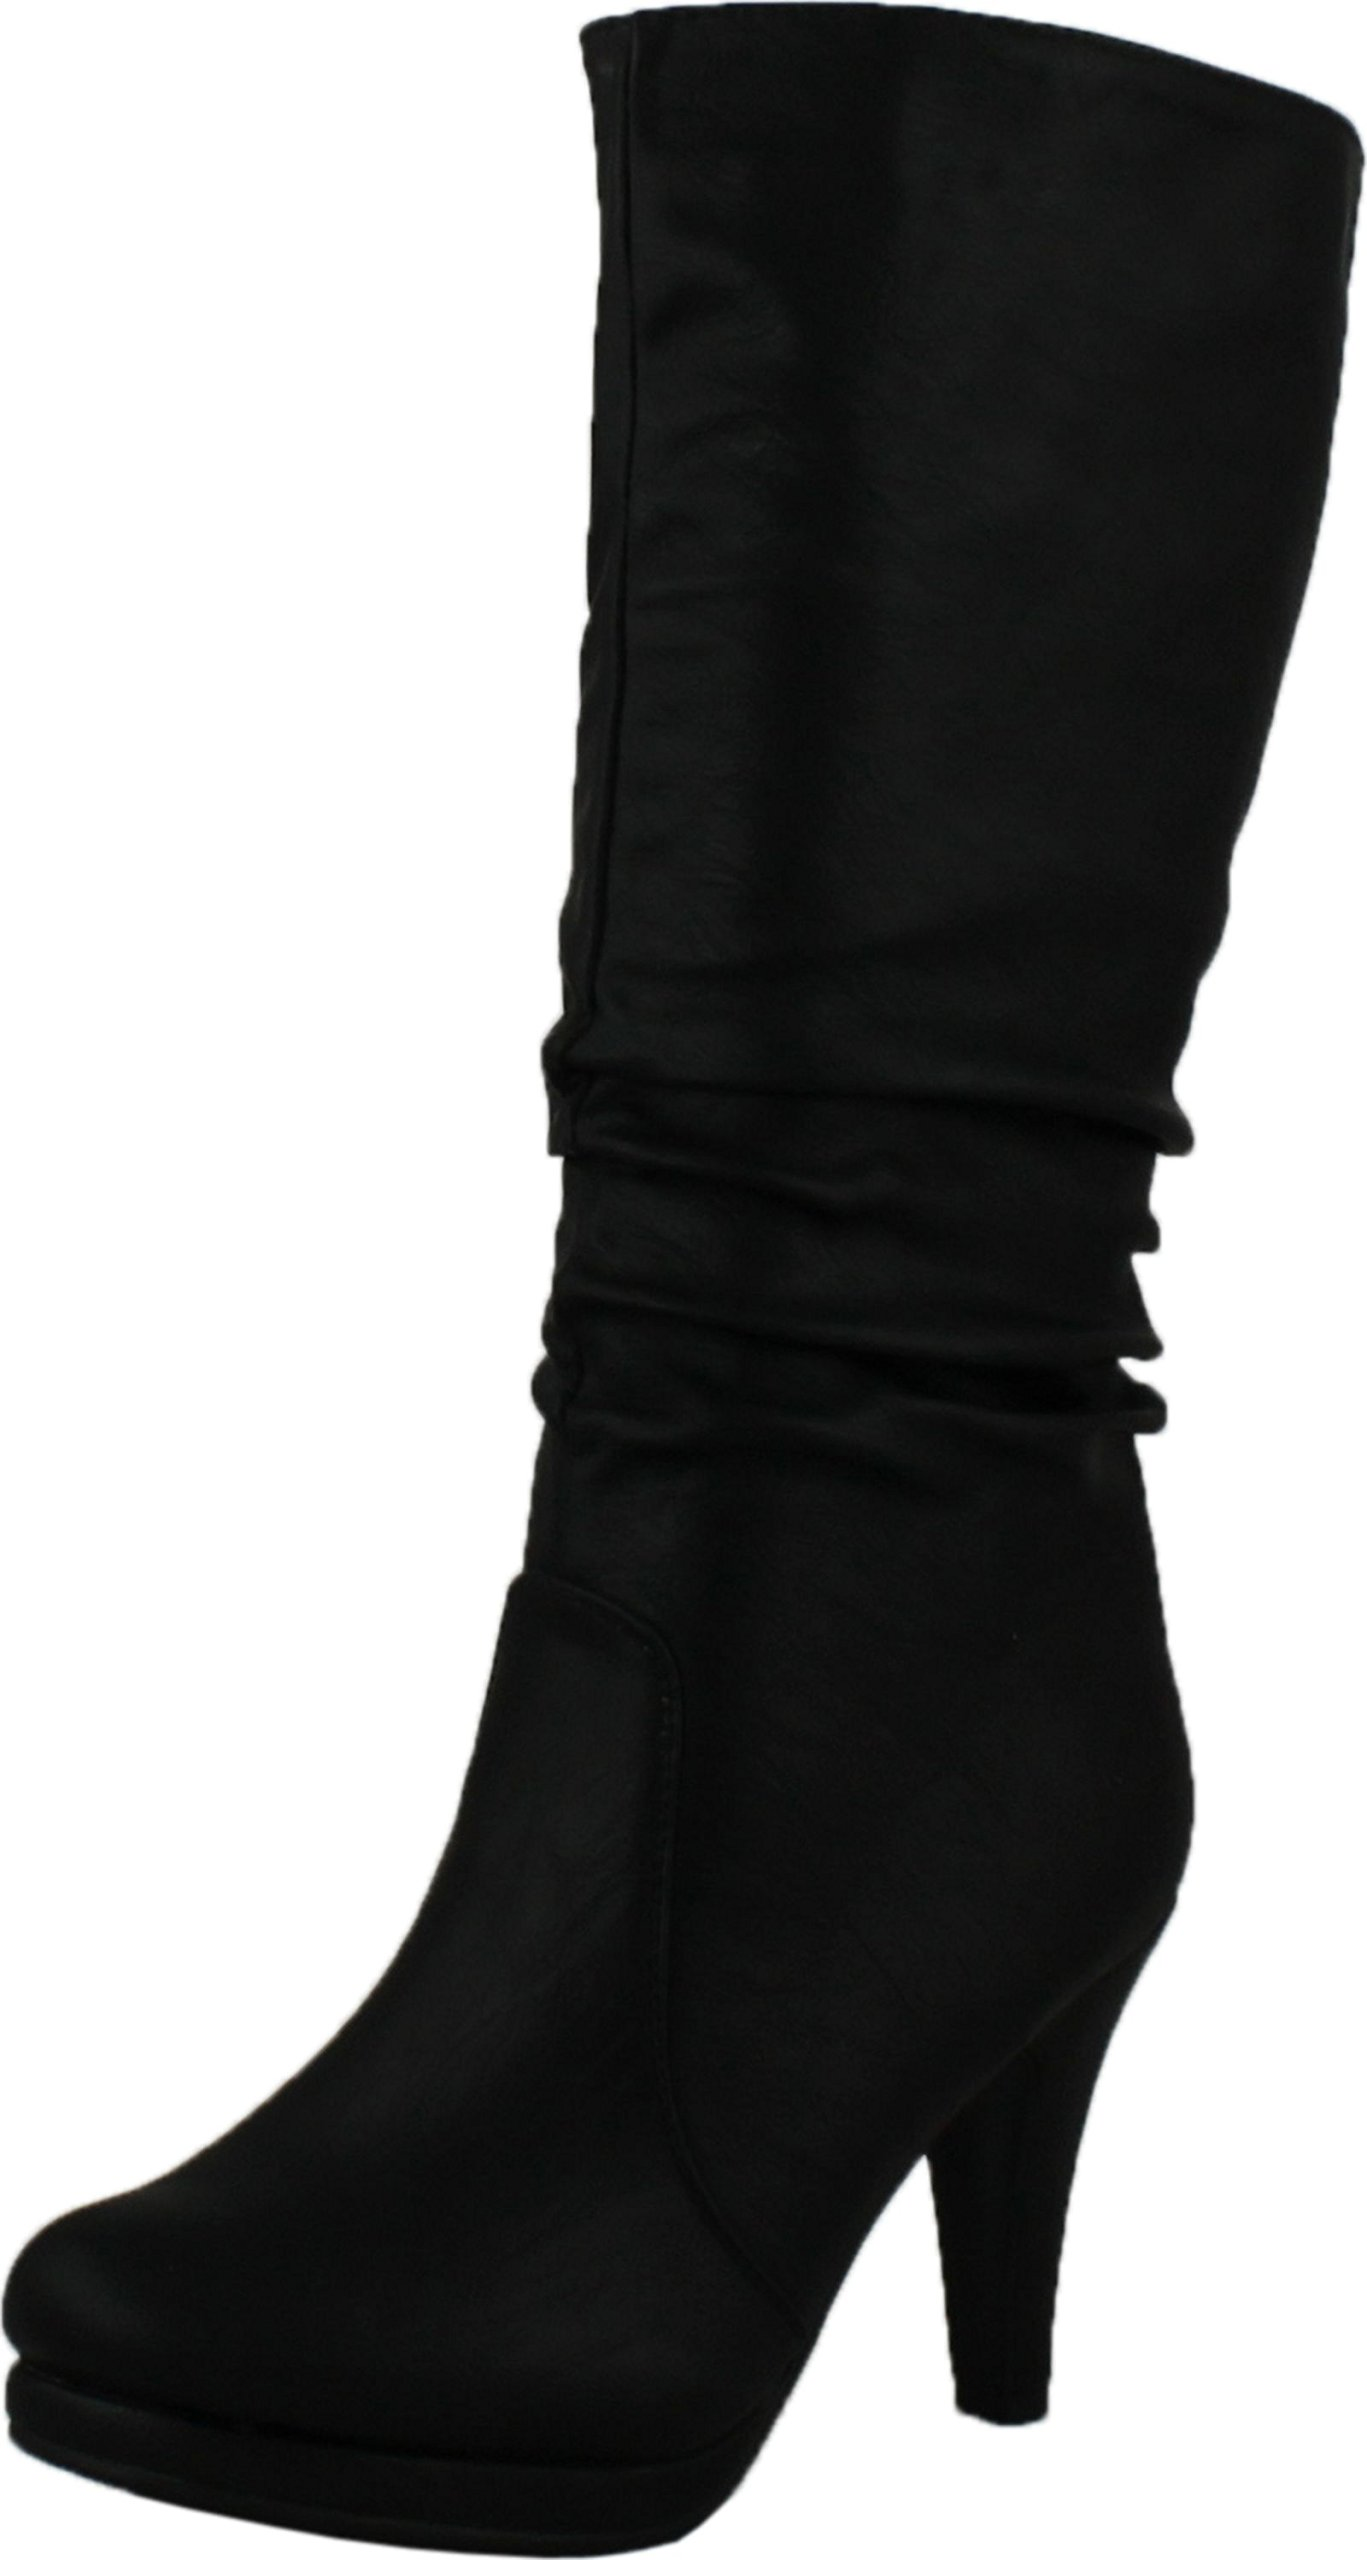 Top Moda Womens Page-43 Mid Calf Round Toe Slouched High Heel Boots, Black 5